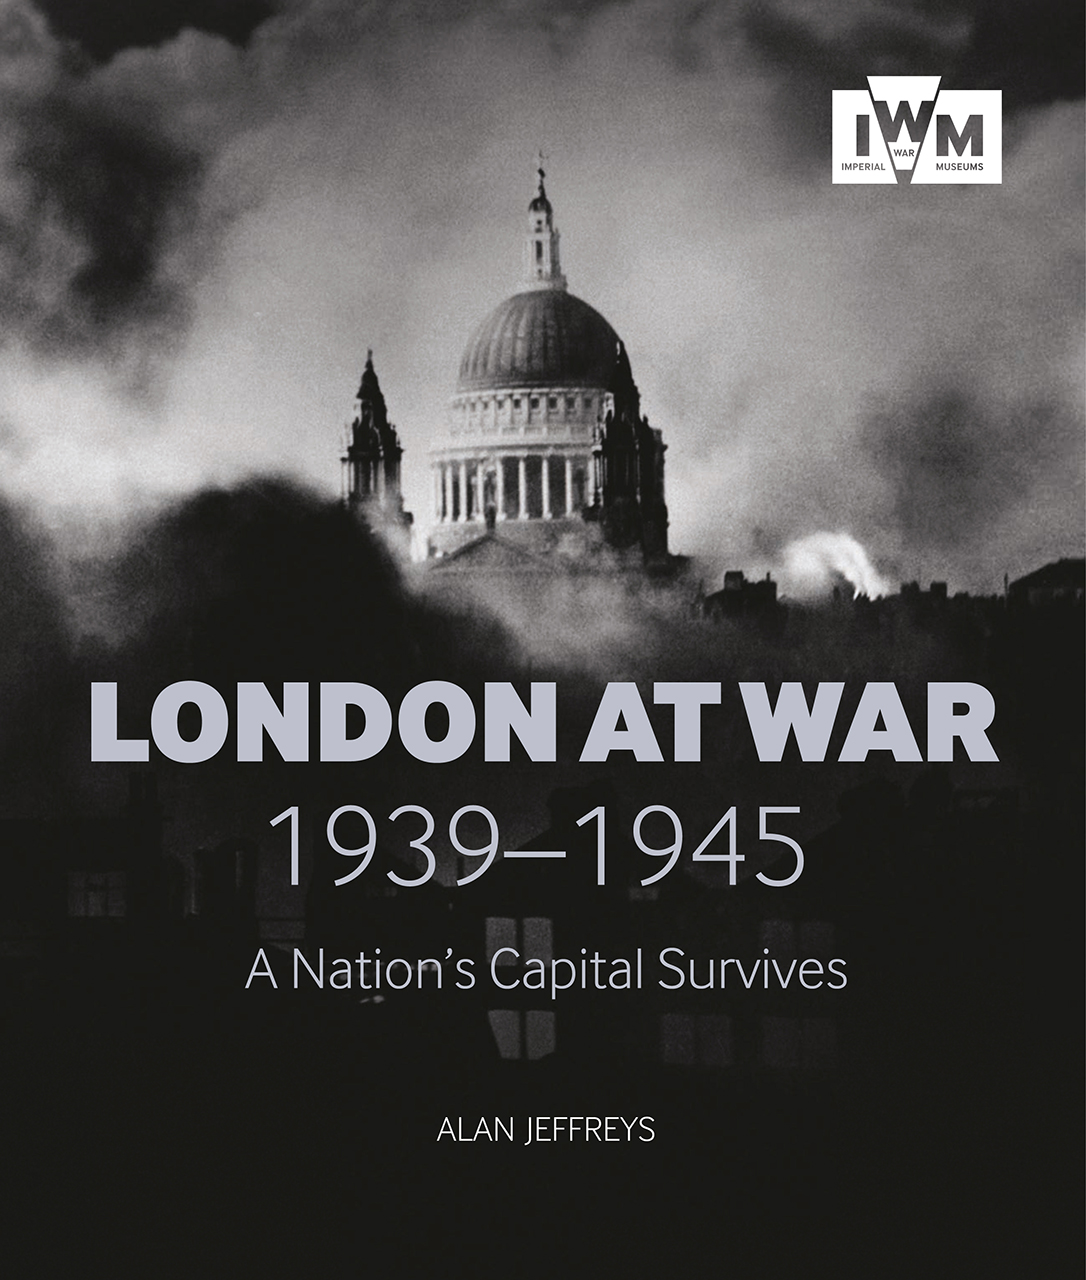 London at War 1939-1945: A Nation's Capital Survives